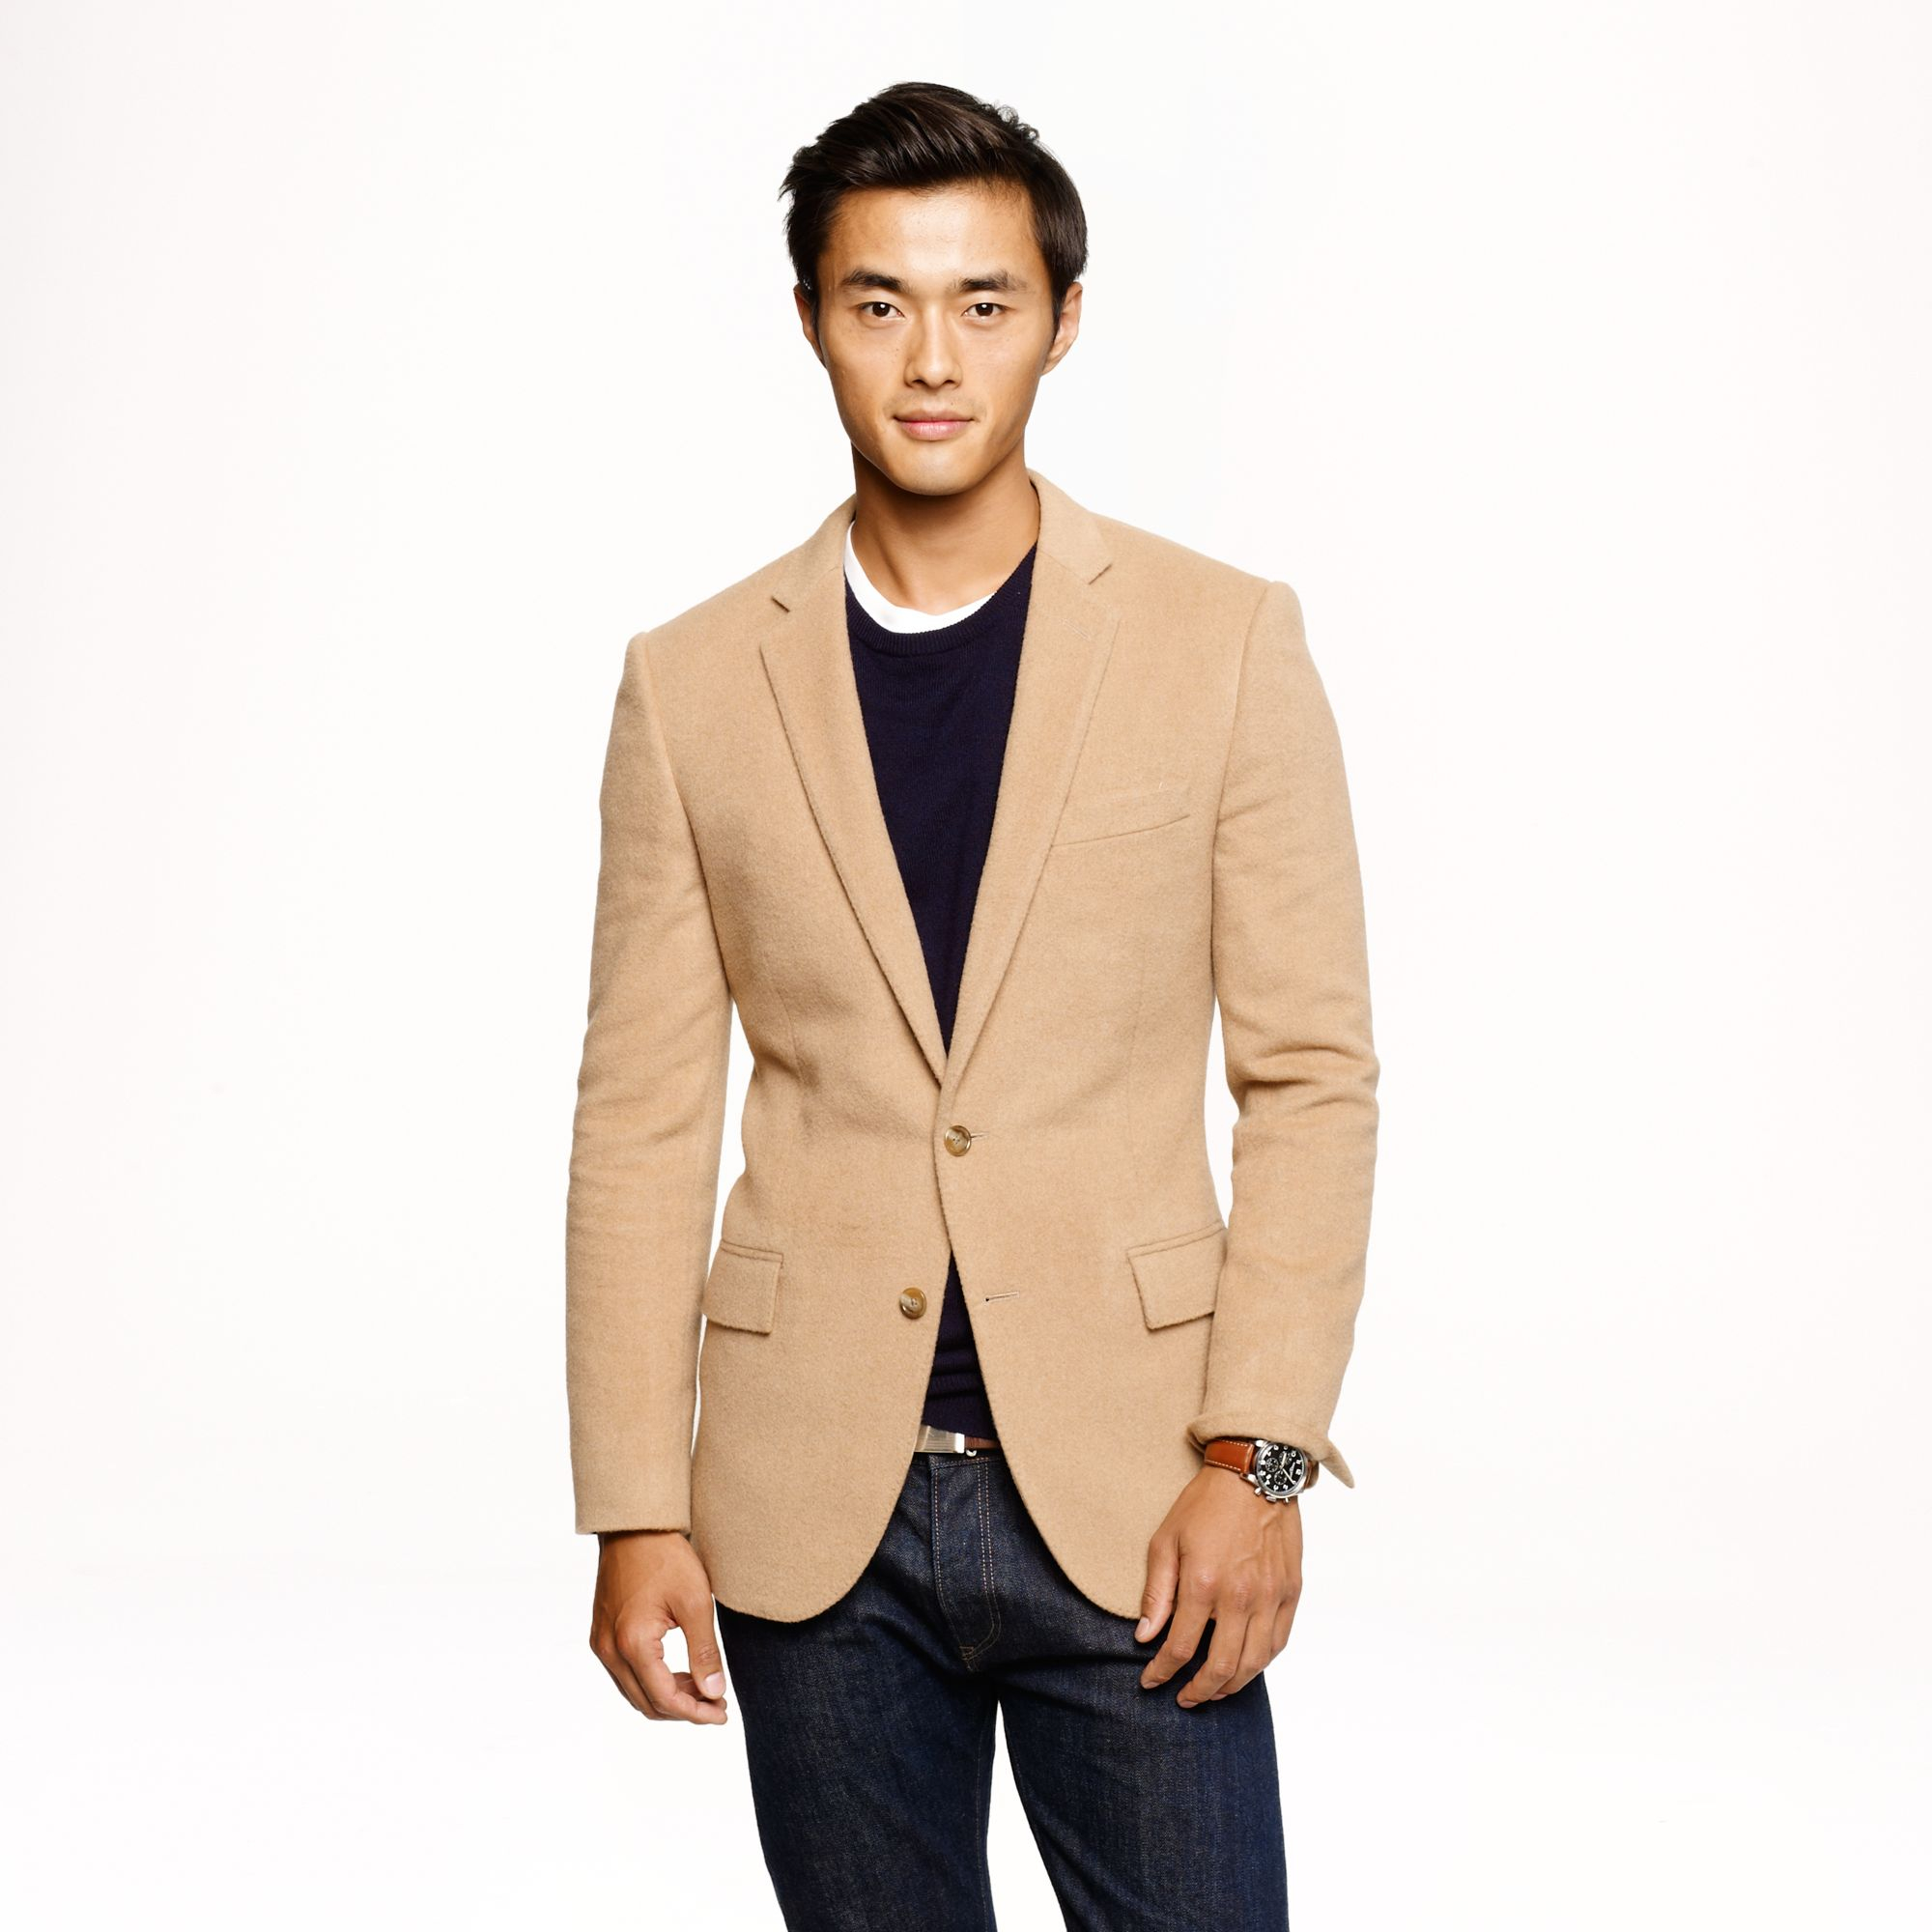 J Crew Ludlow Sportcoat In English Camel Hair In Beige For